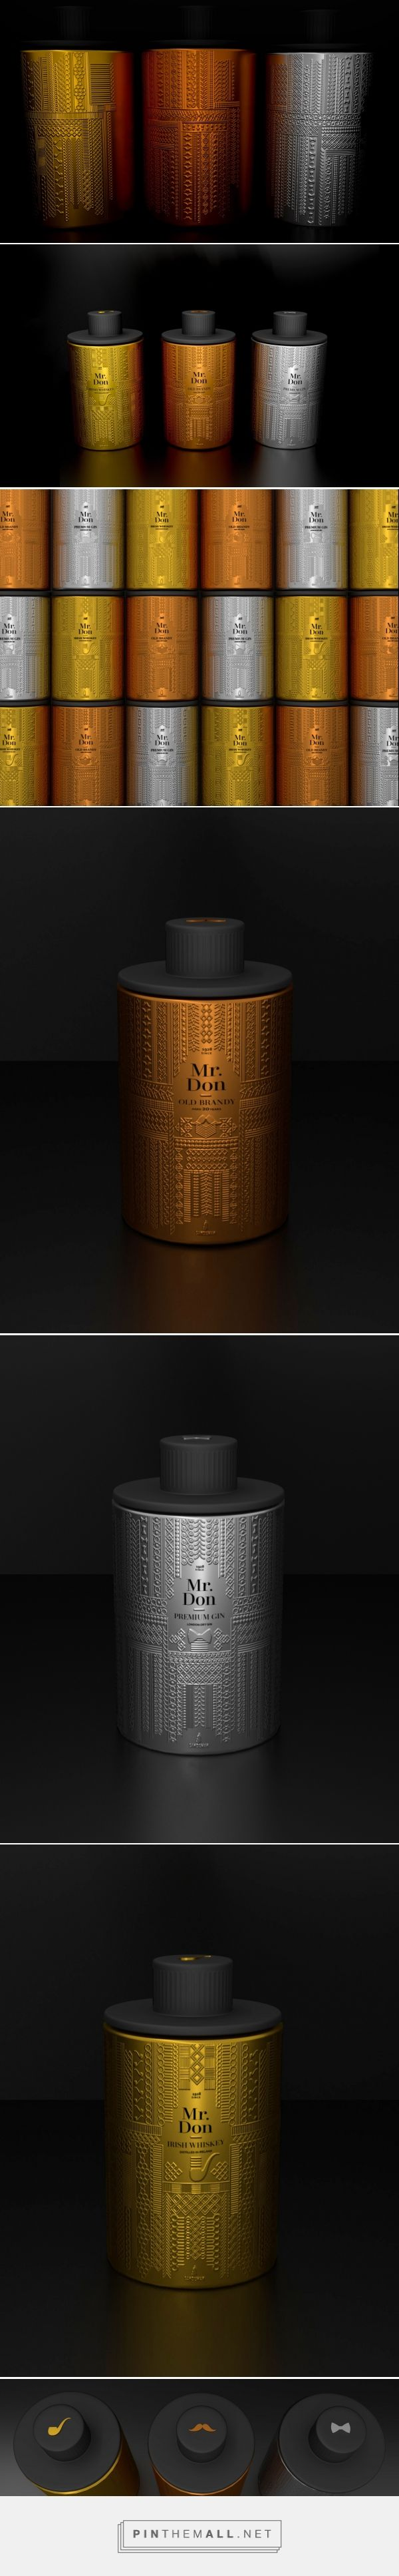 Mr. Don - Sandeman - Packaging of the World - Creative Package Design Gallery - http://www.packagingoftheworld.com/2017/11/mr-don-sandeman.html - created via https://pinthemall.net